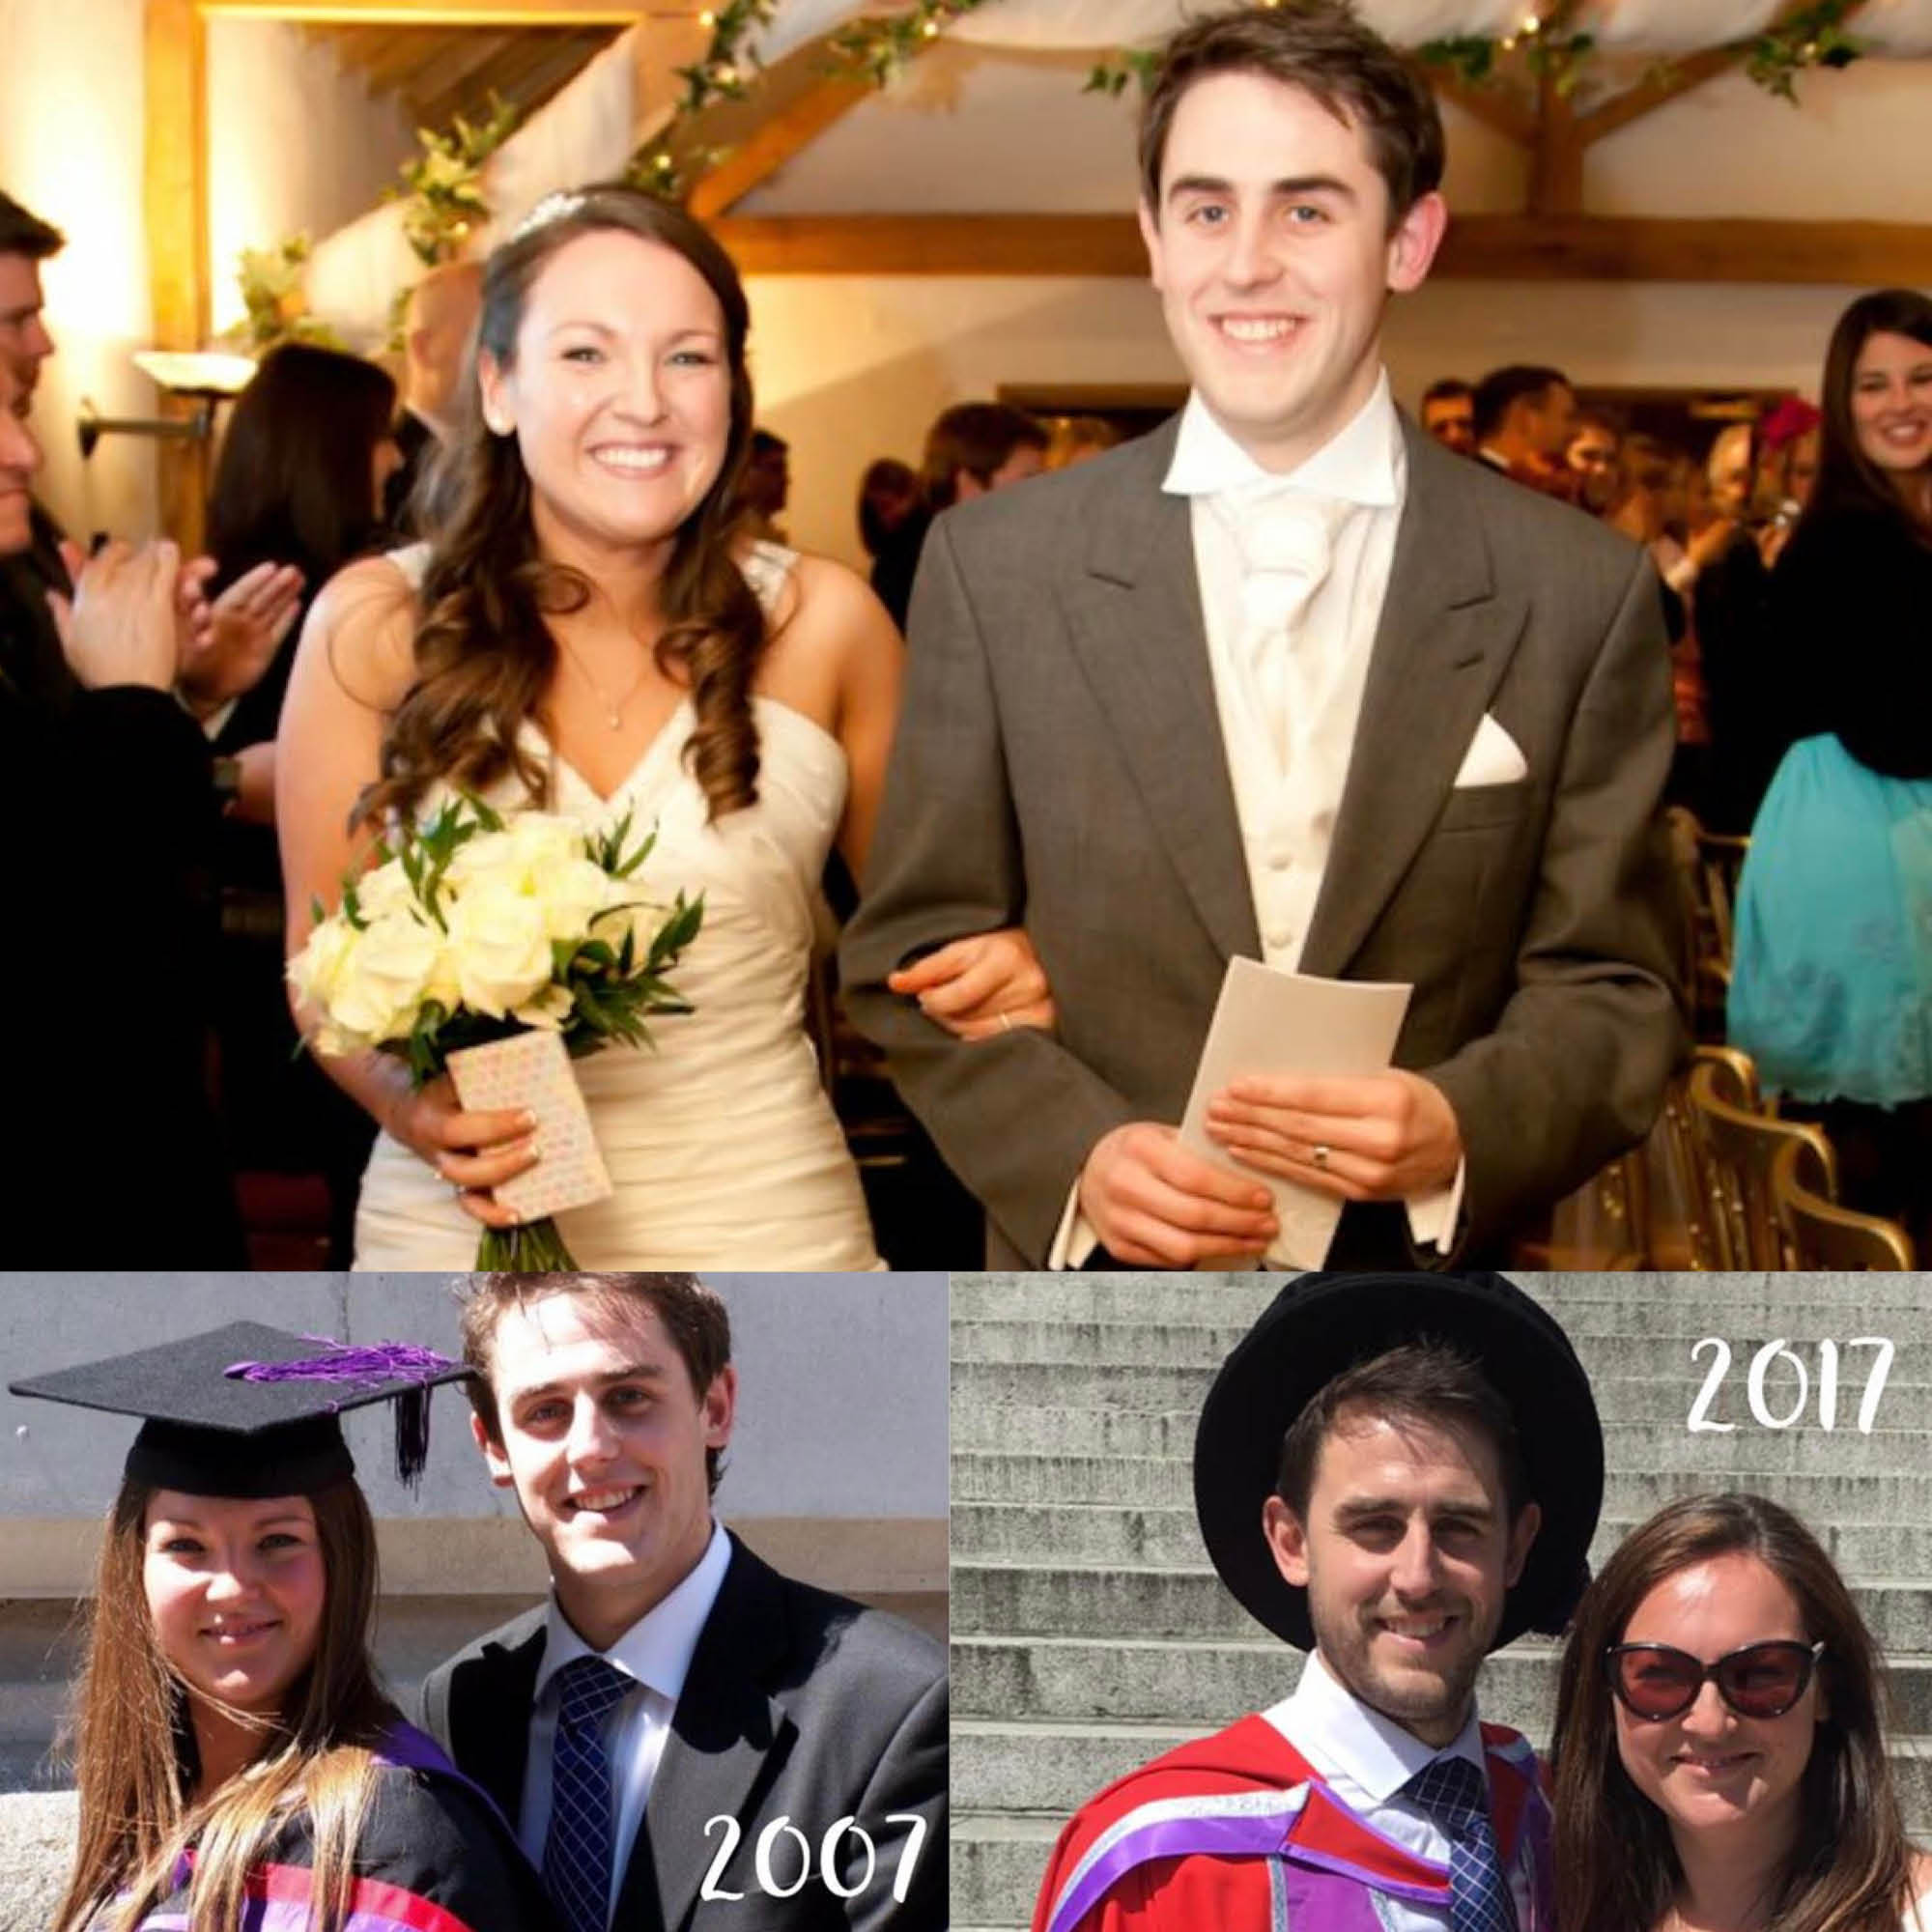 Mike and Nicole Rayner - ...have been together since 2007 after meeting in the Students' Union in 2005. Mike studied Sports Development followed by a Master's in International Human Resource Management, and a PhD in Philosophy of Science. Nicole studied Leisure Management and Marketing and graduated in 2007. They've been married for 7 years and have 3 children together!